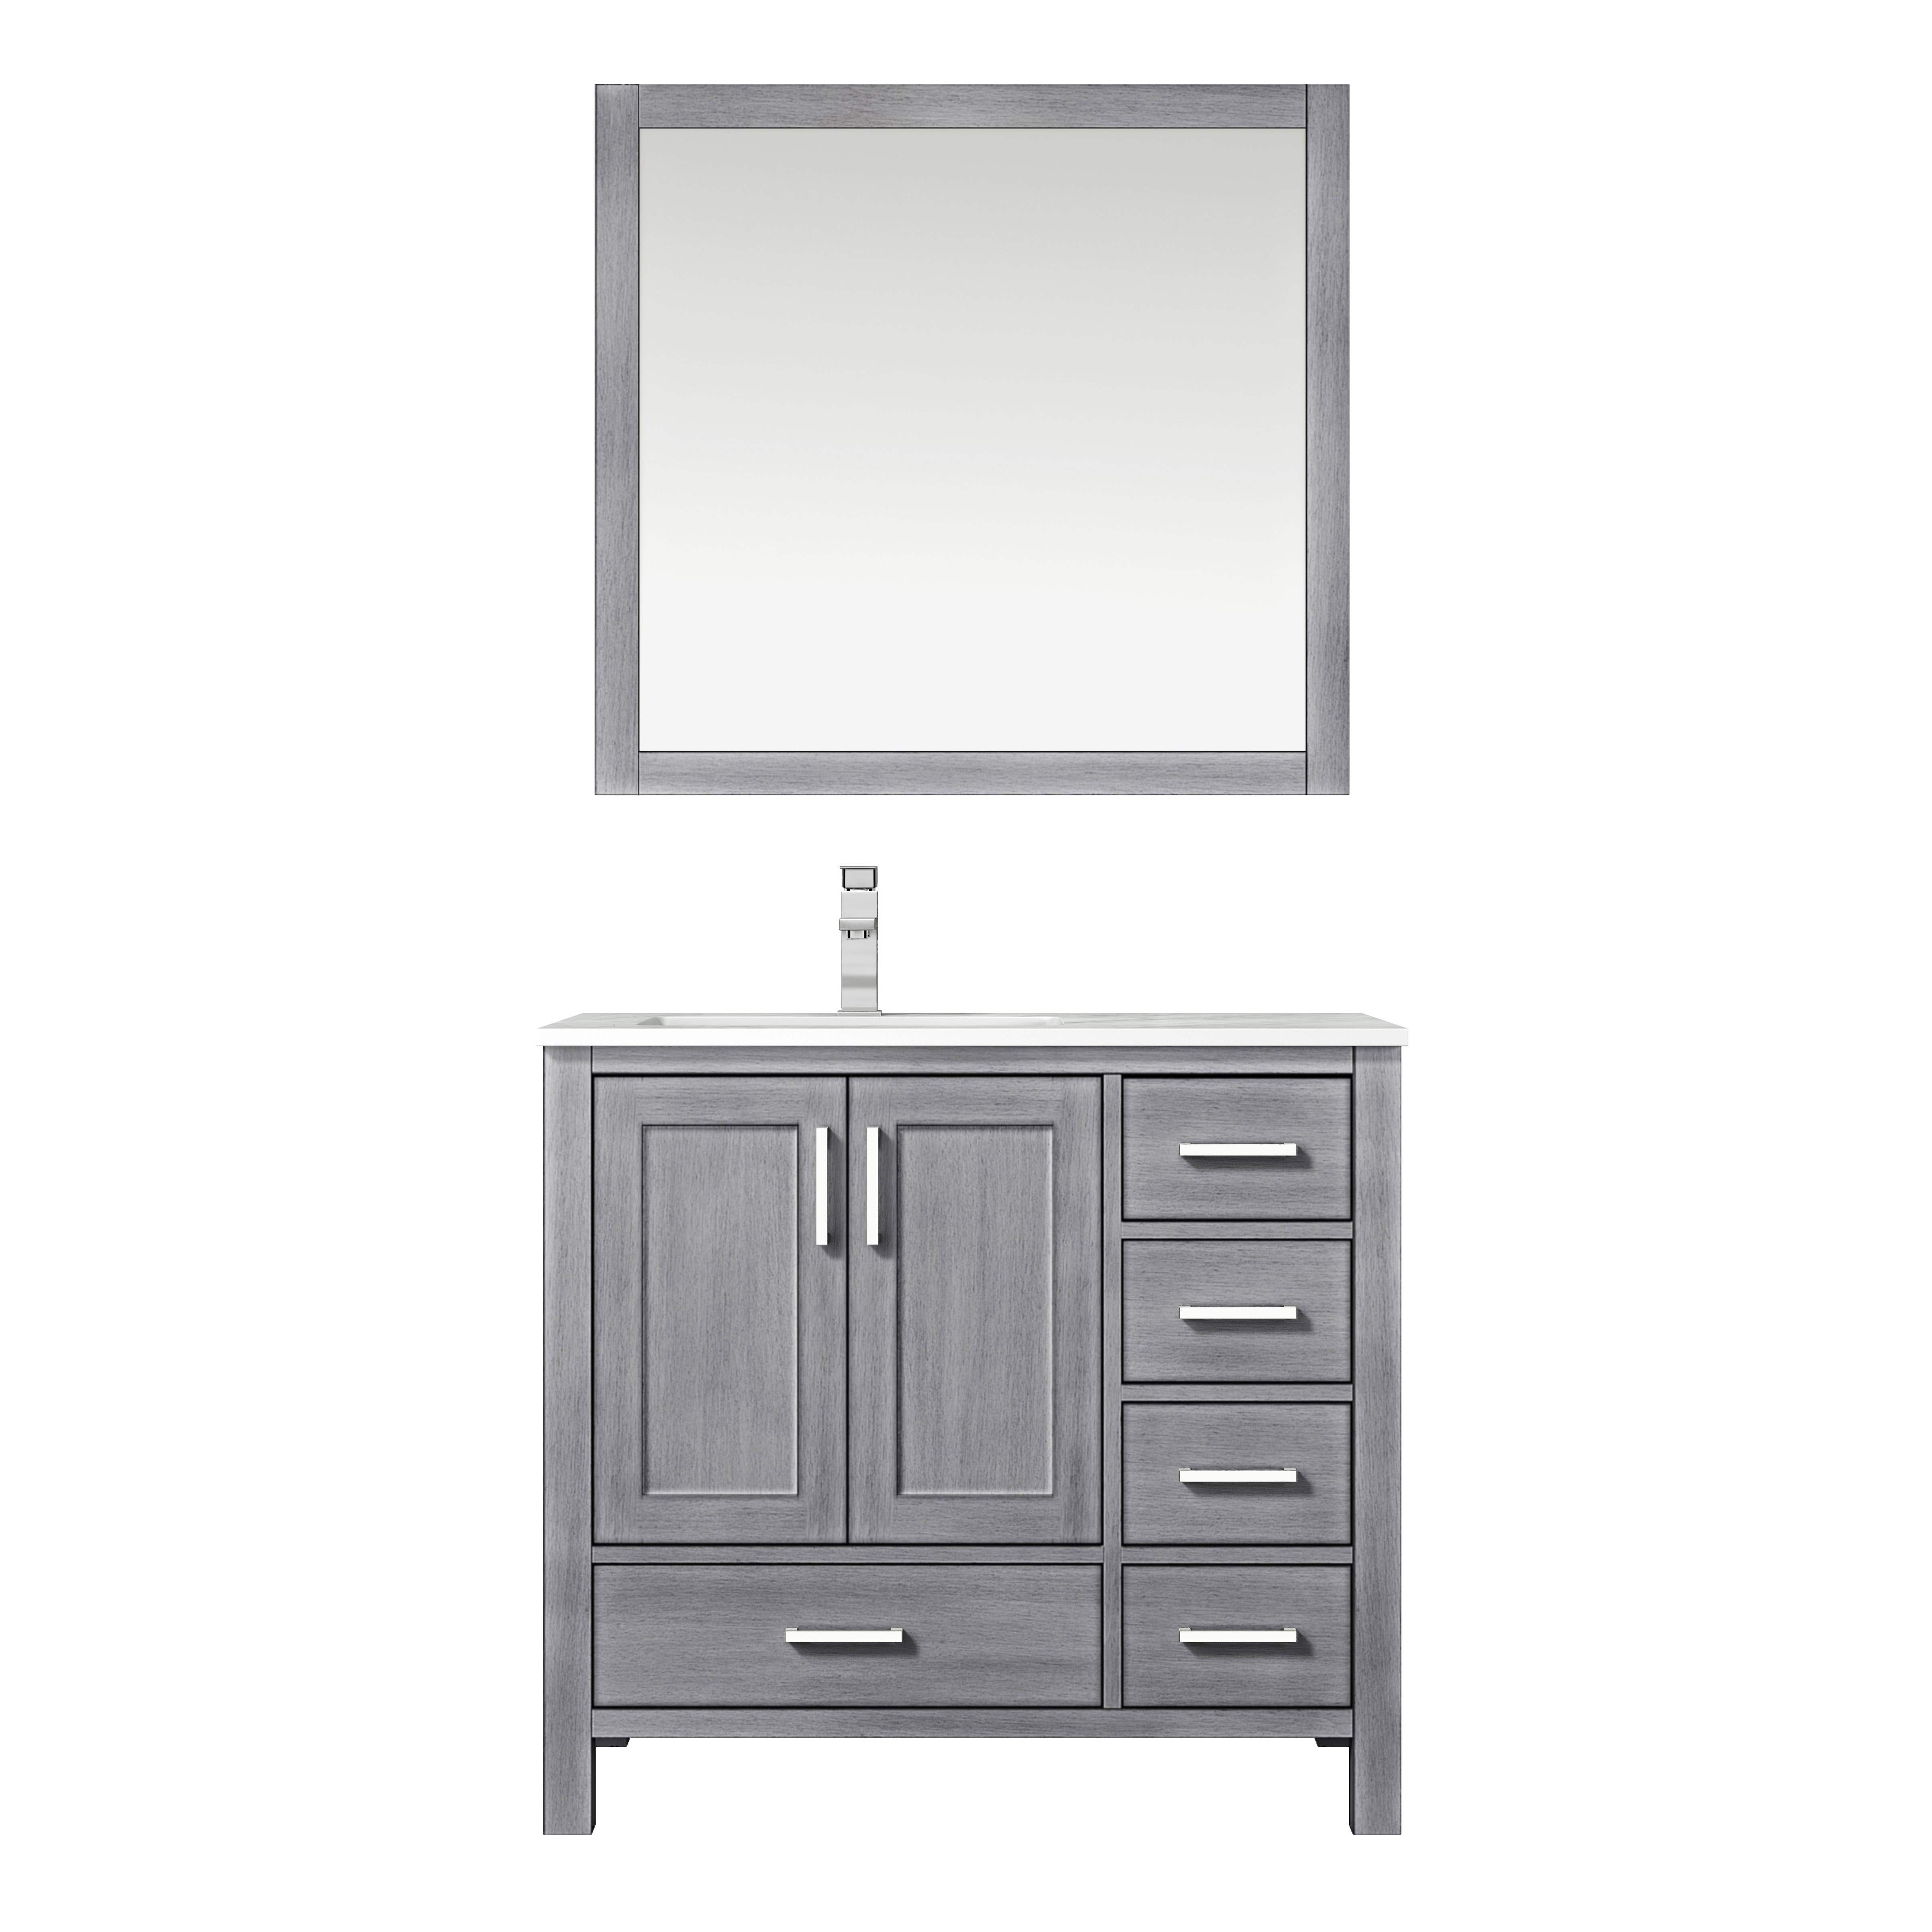 "36"" Distressed Grey Vanity Cabinet Only - Left Version with Countertop and Mirror Options"